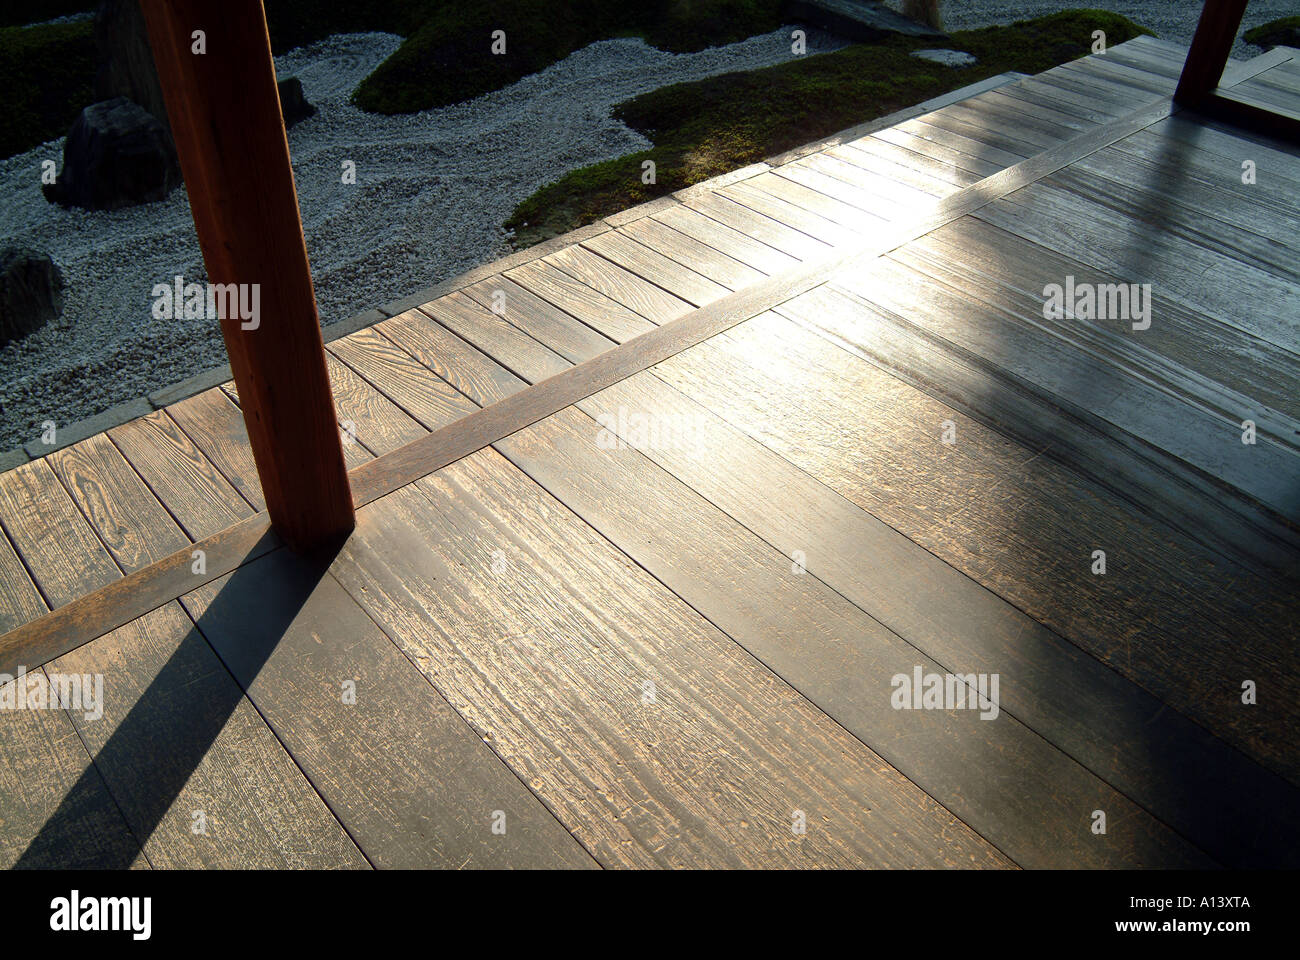 Polished floor at Zuiho-in within Daitokuji Temple Kyoto Japan - Stock Image